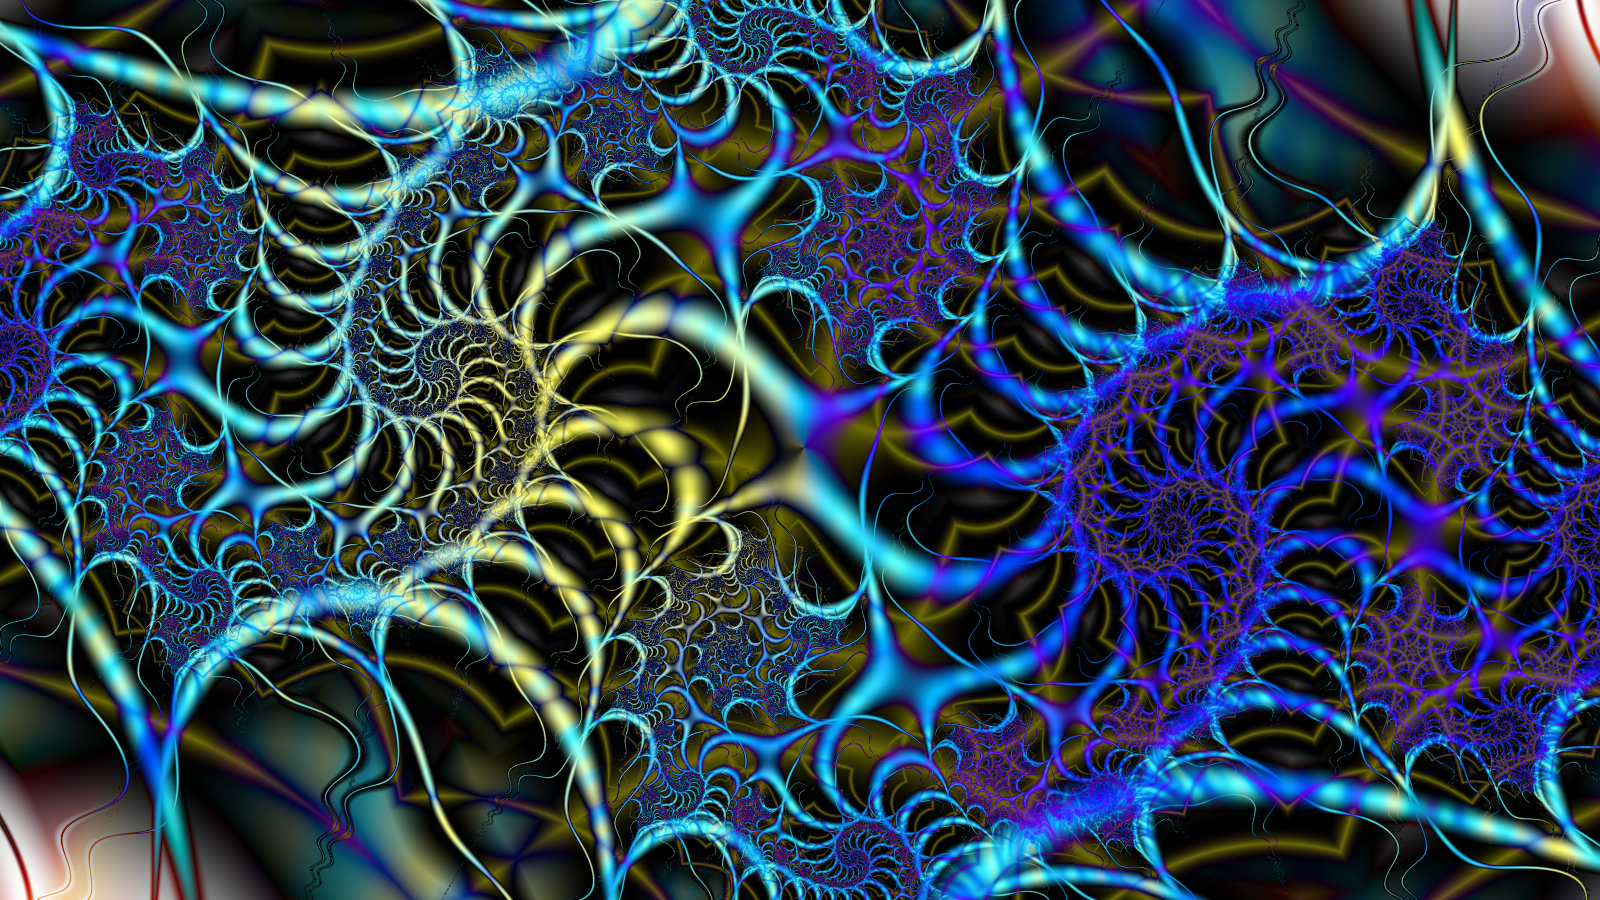 Creating Digital Art With Ultra Fractal 5 Entertain Your Pc